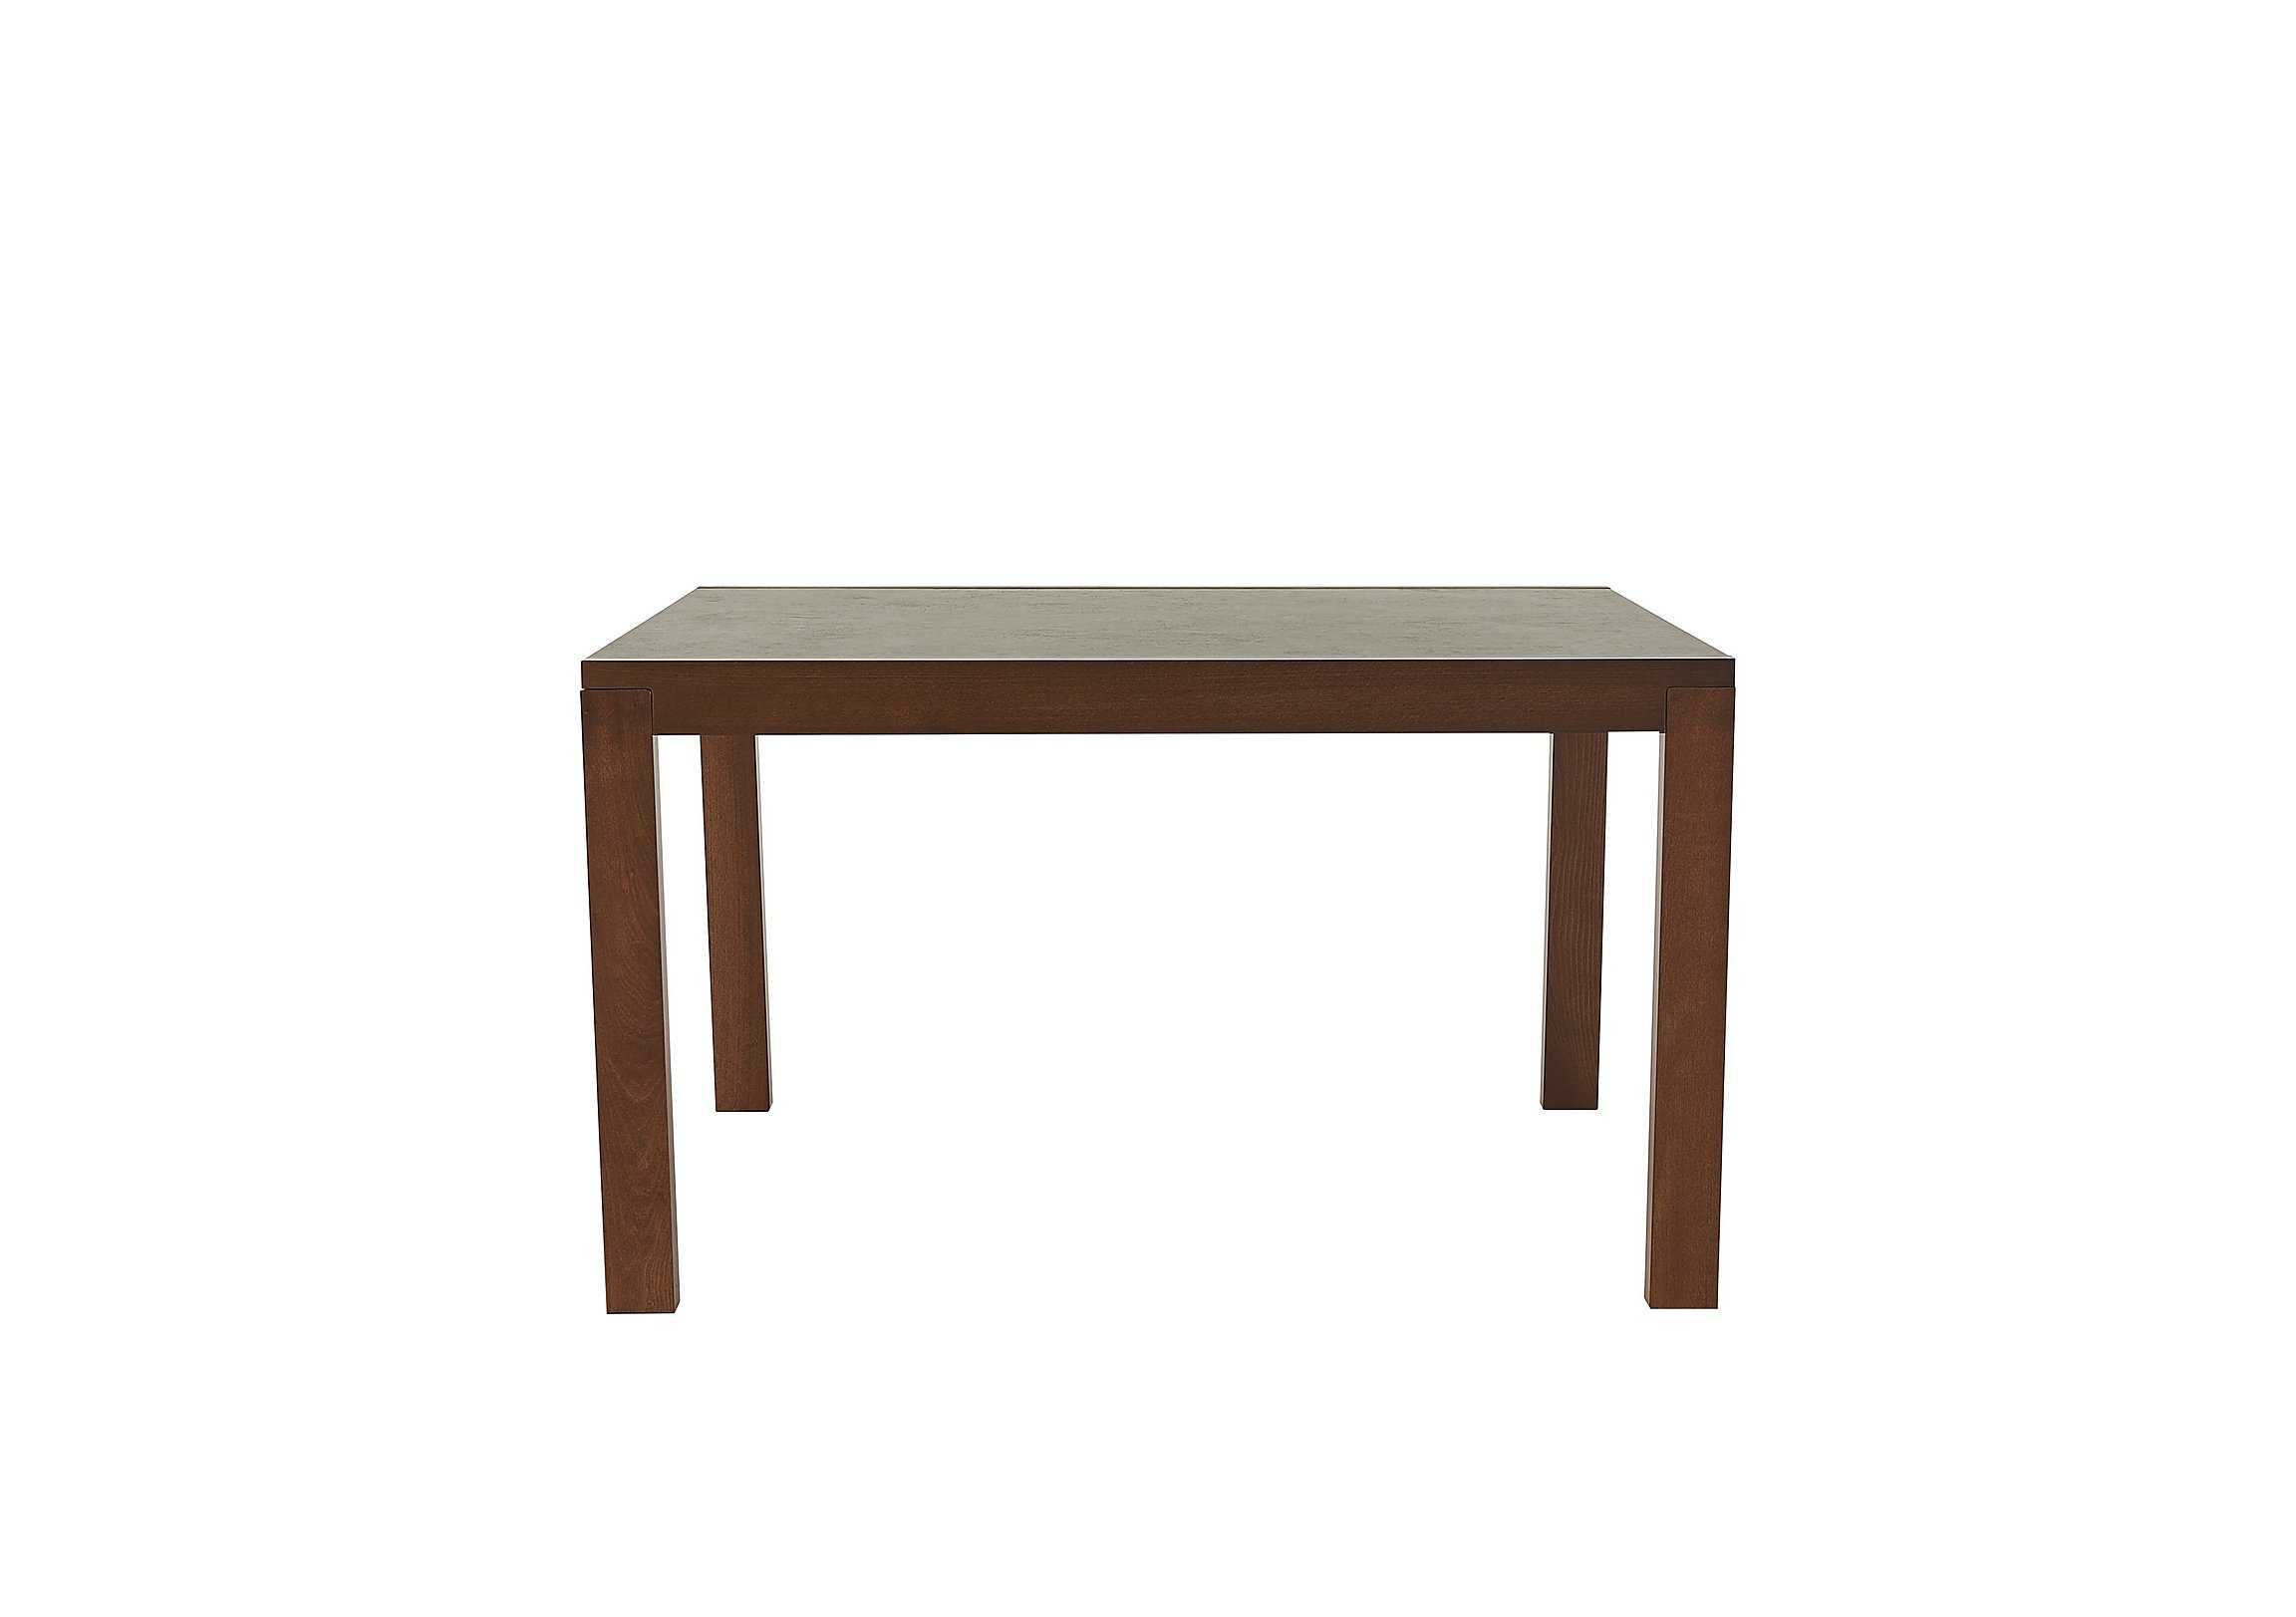 smart extending dining table  calligaris  furniture village - calligaris smart extending dining table